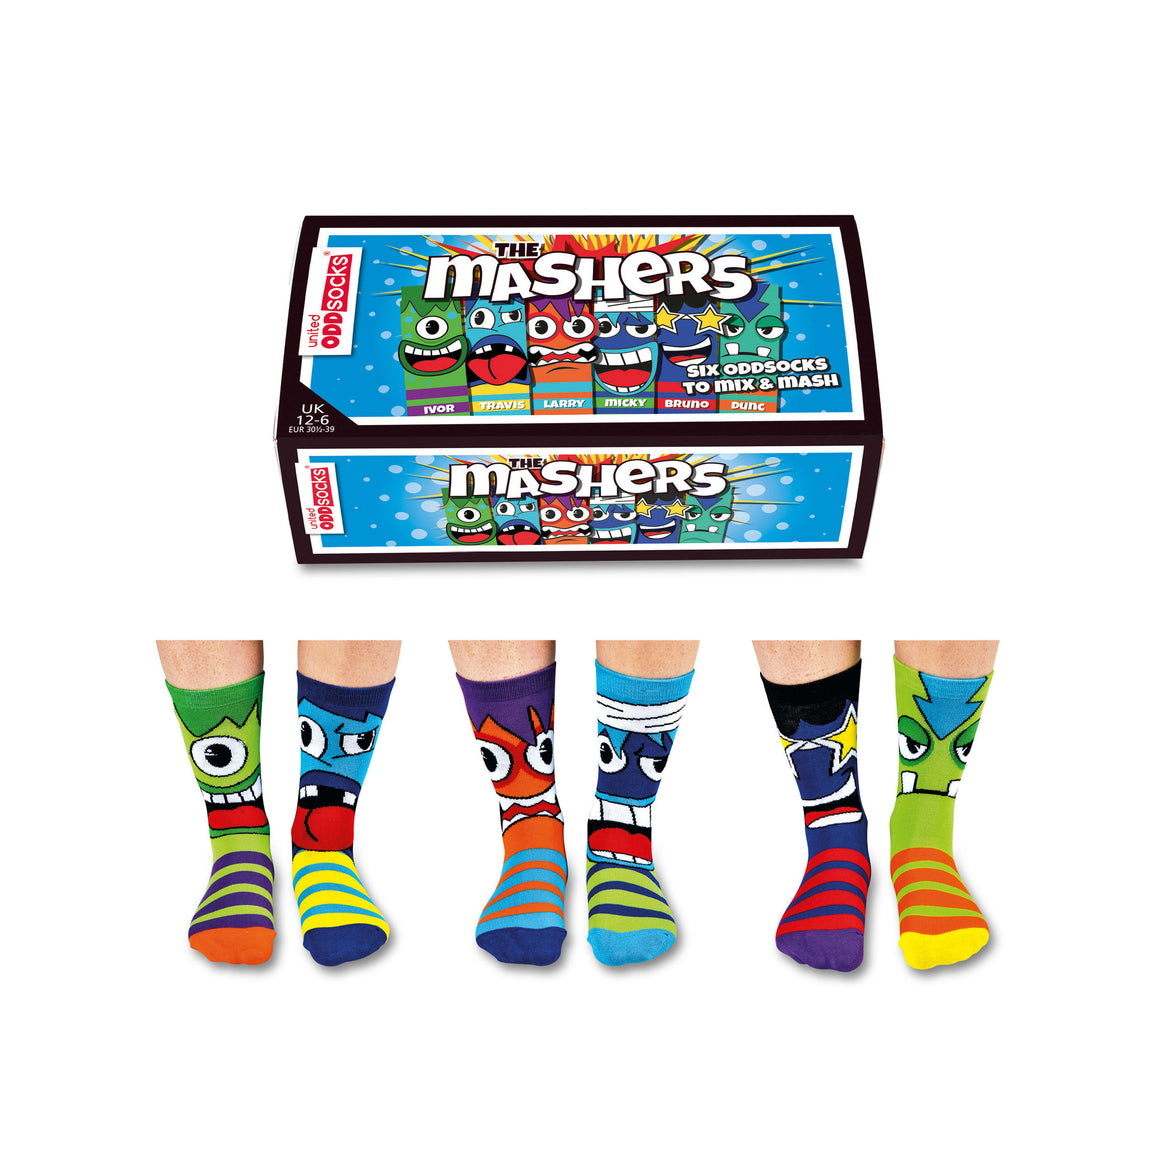 United Odd Socks The Mashers Boys Gift Box